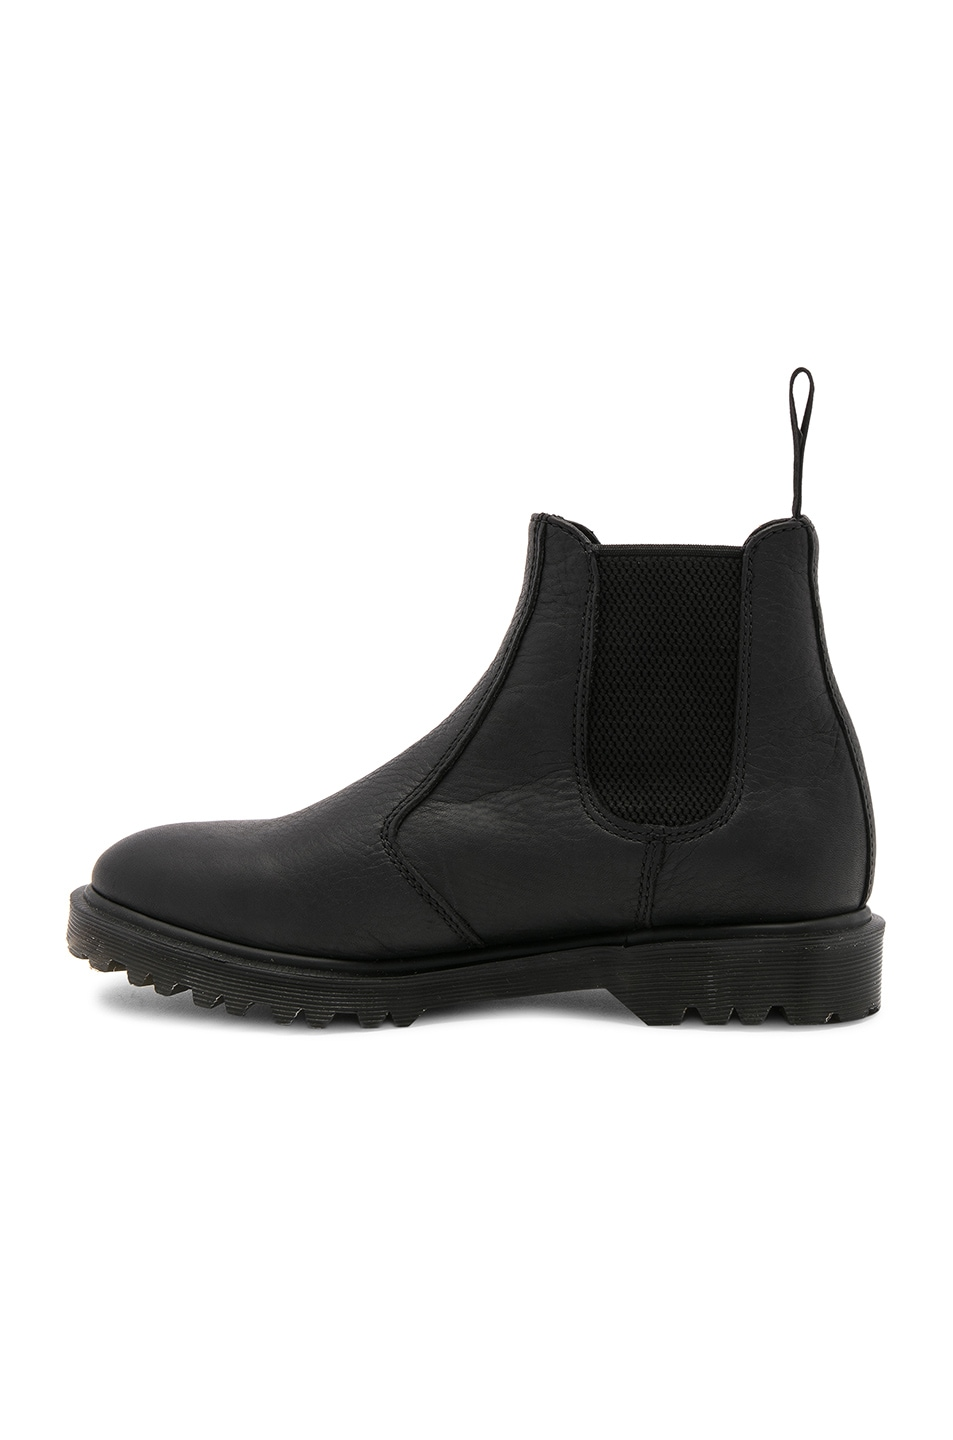 Image 5 of Dr. Martens 2976 Chelsea Leather Boots in Black